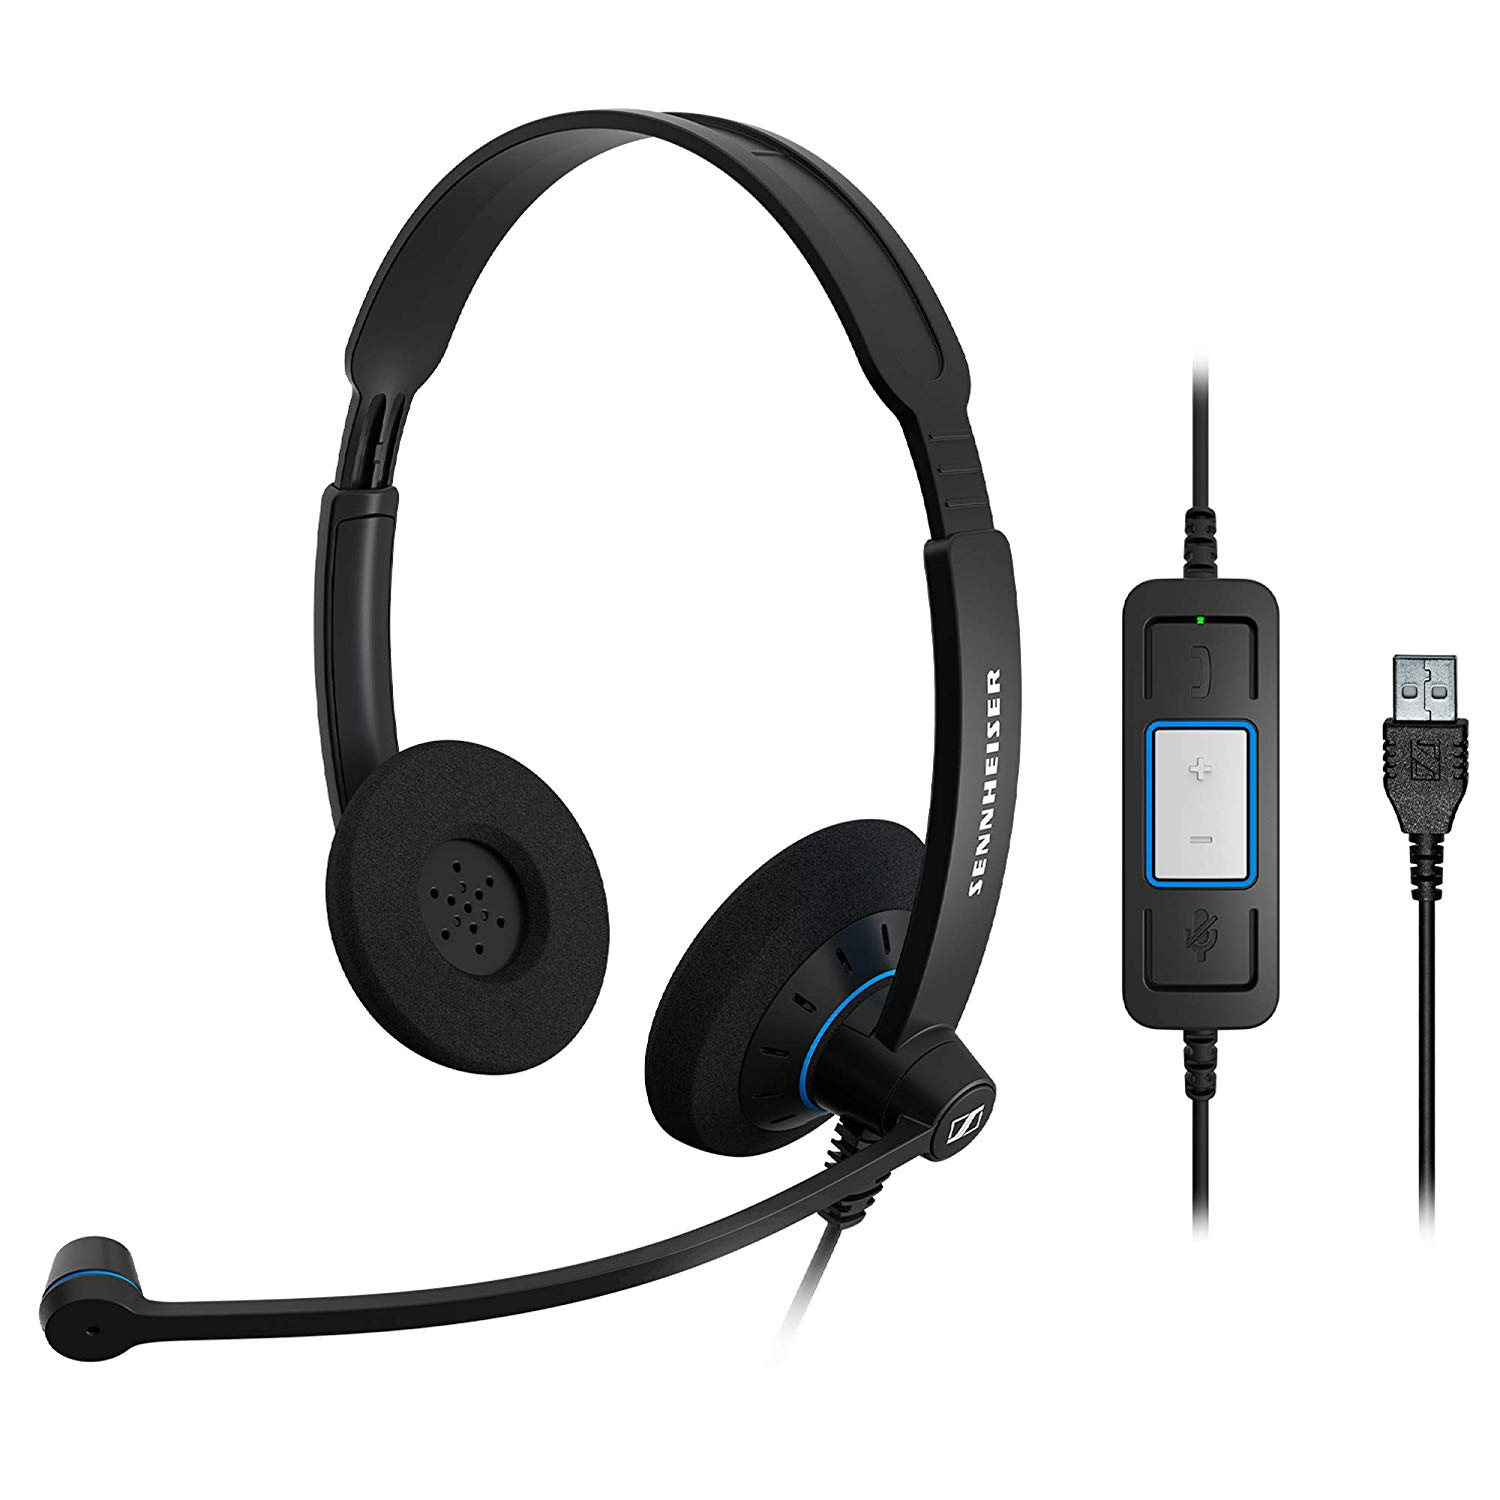 Sennheiser SC 60 USB CTRL (504549) - Double-Sided Business Headset | For Unified Communications | with HD Sound, Noise-Cancelling Microphone, & USB Connector (Black)